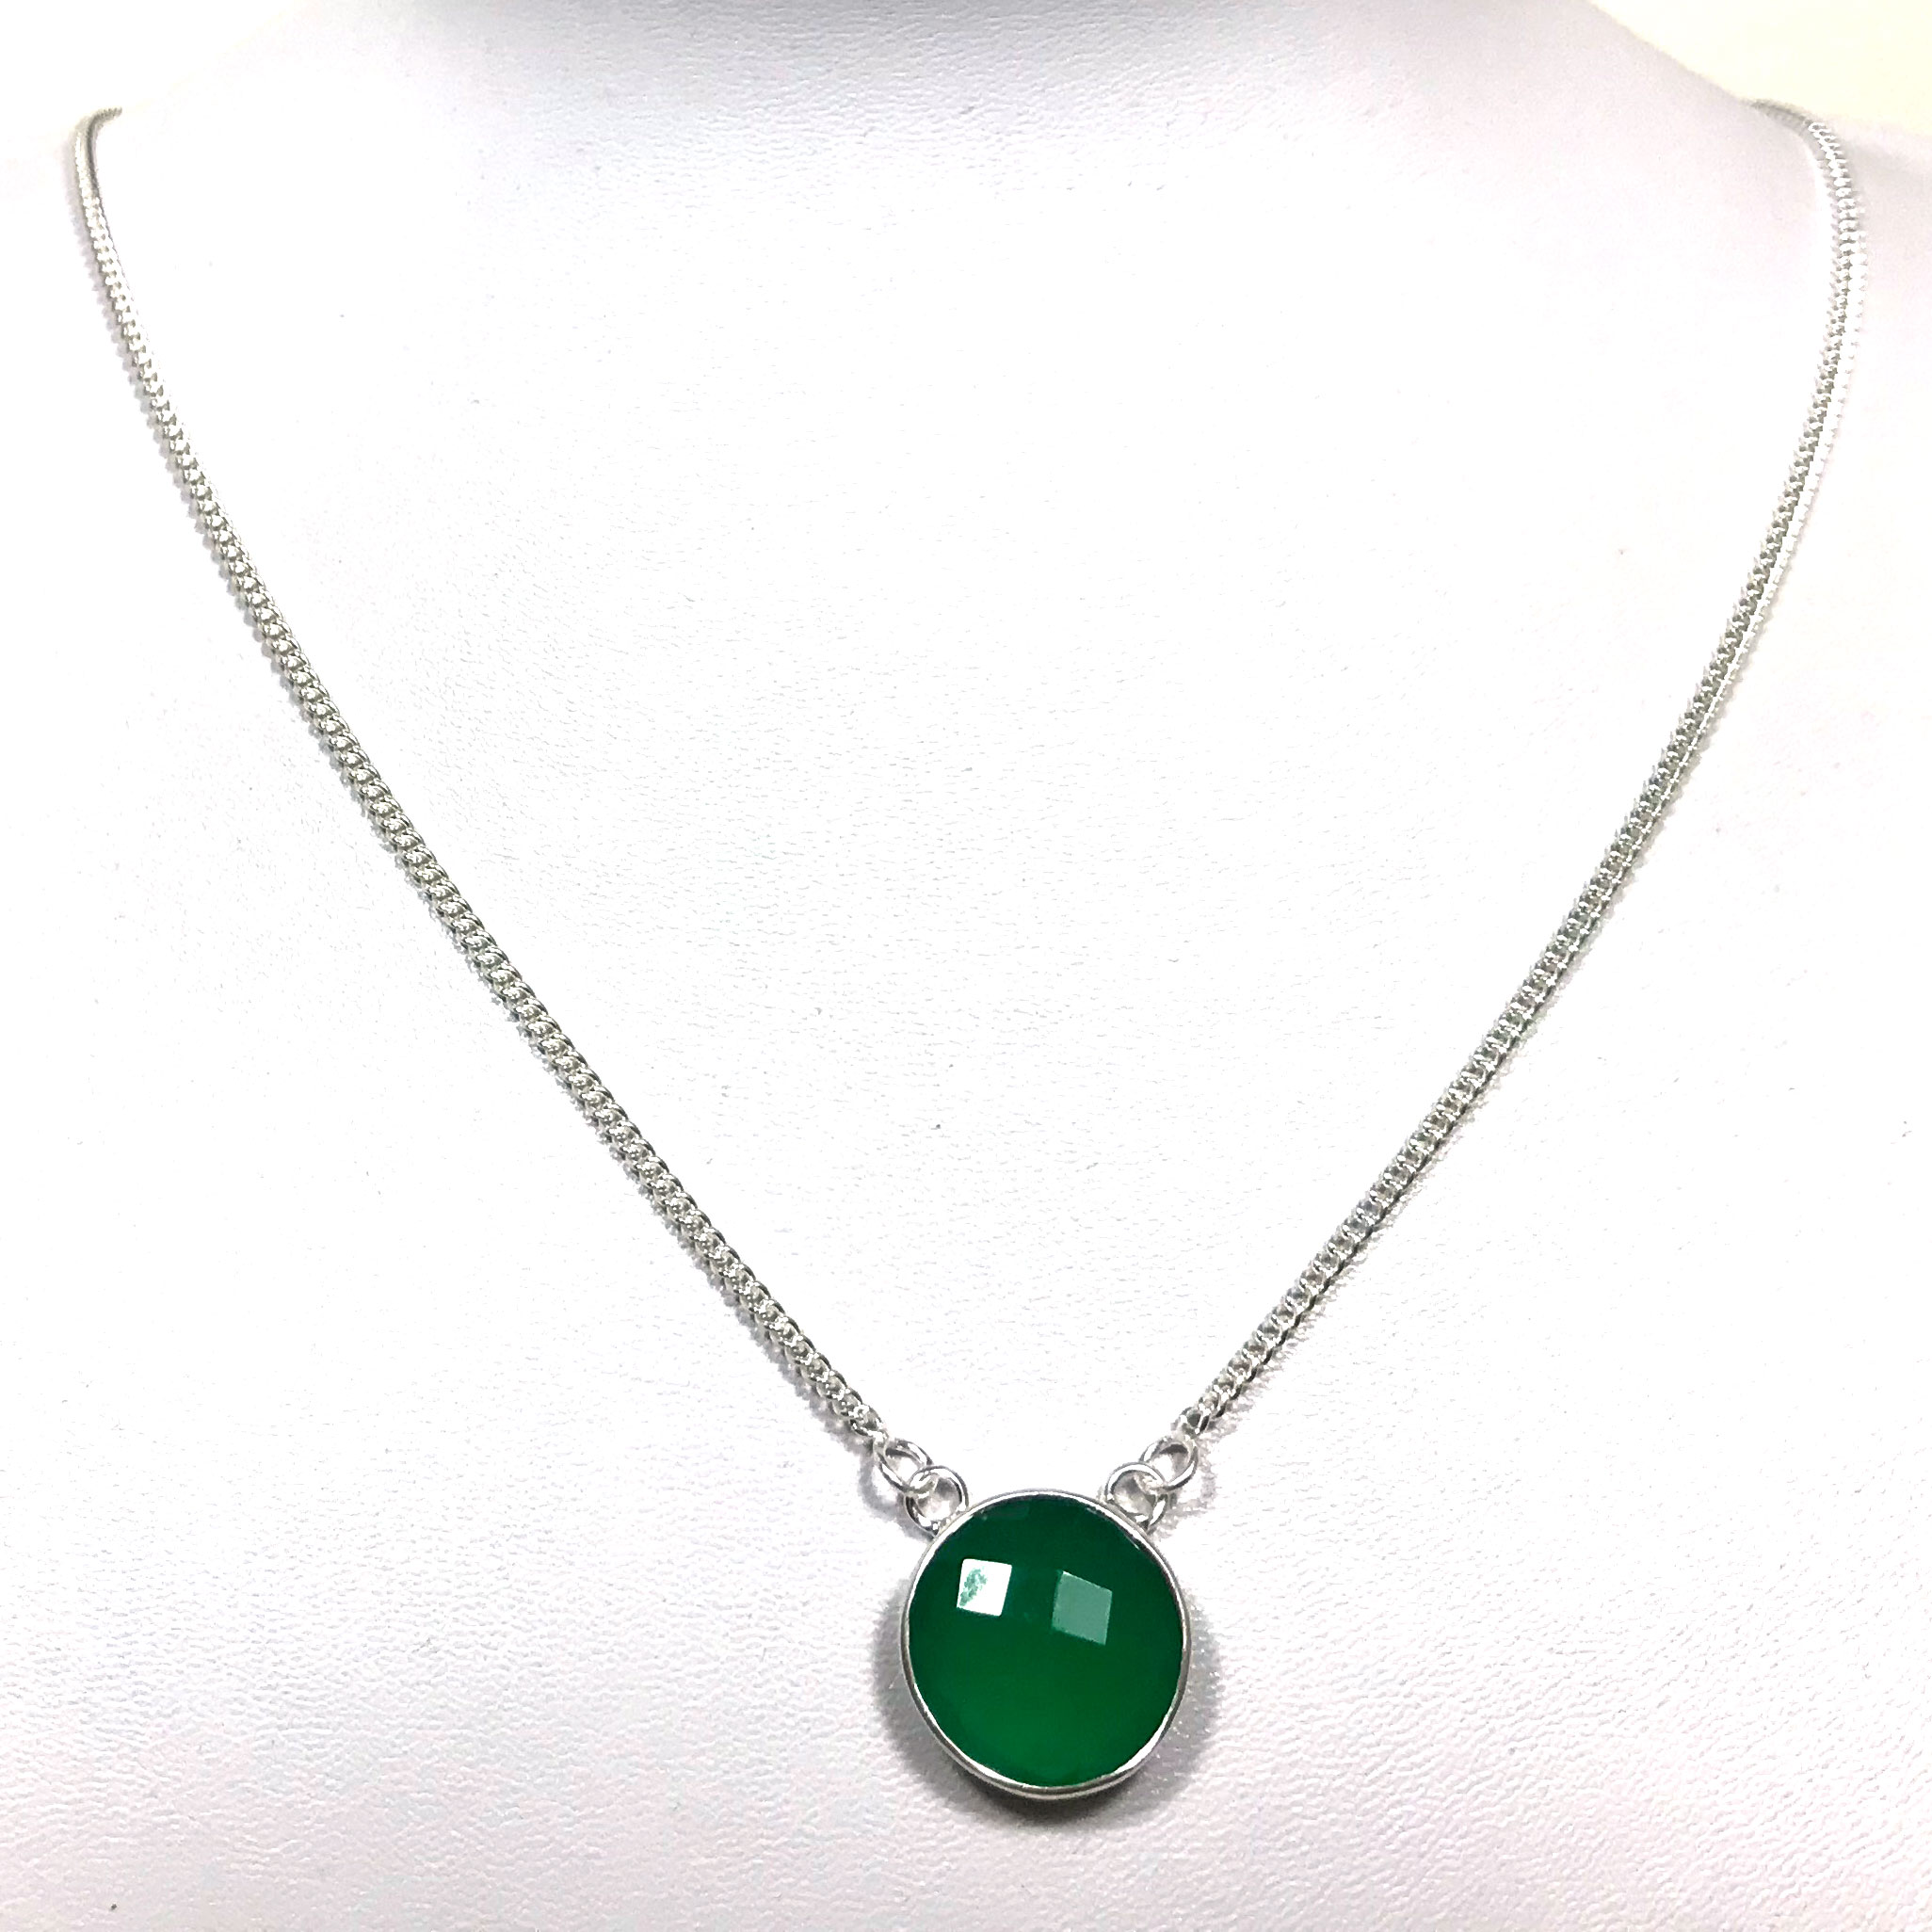 green crafted necklace pin for druzy and new hand sterling available onyx silver